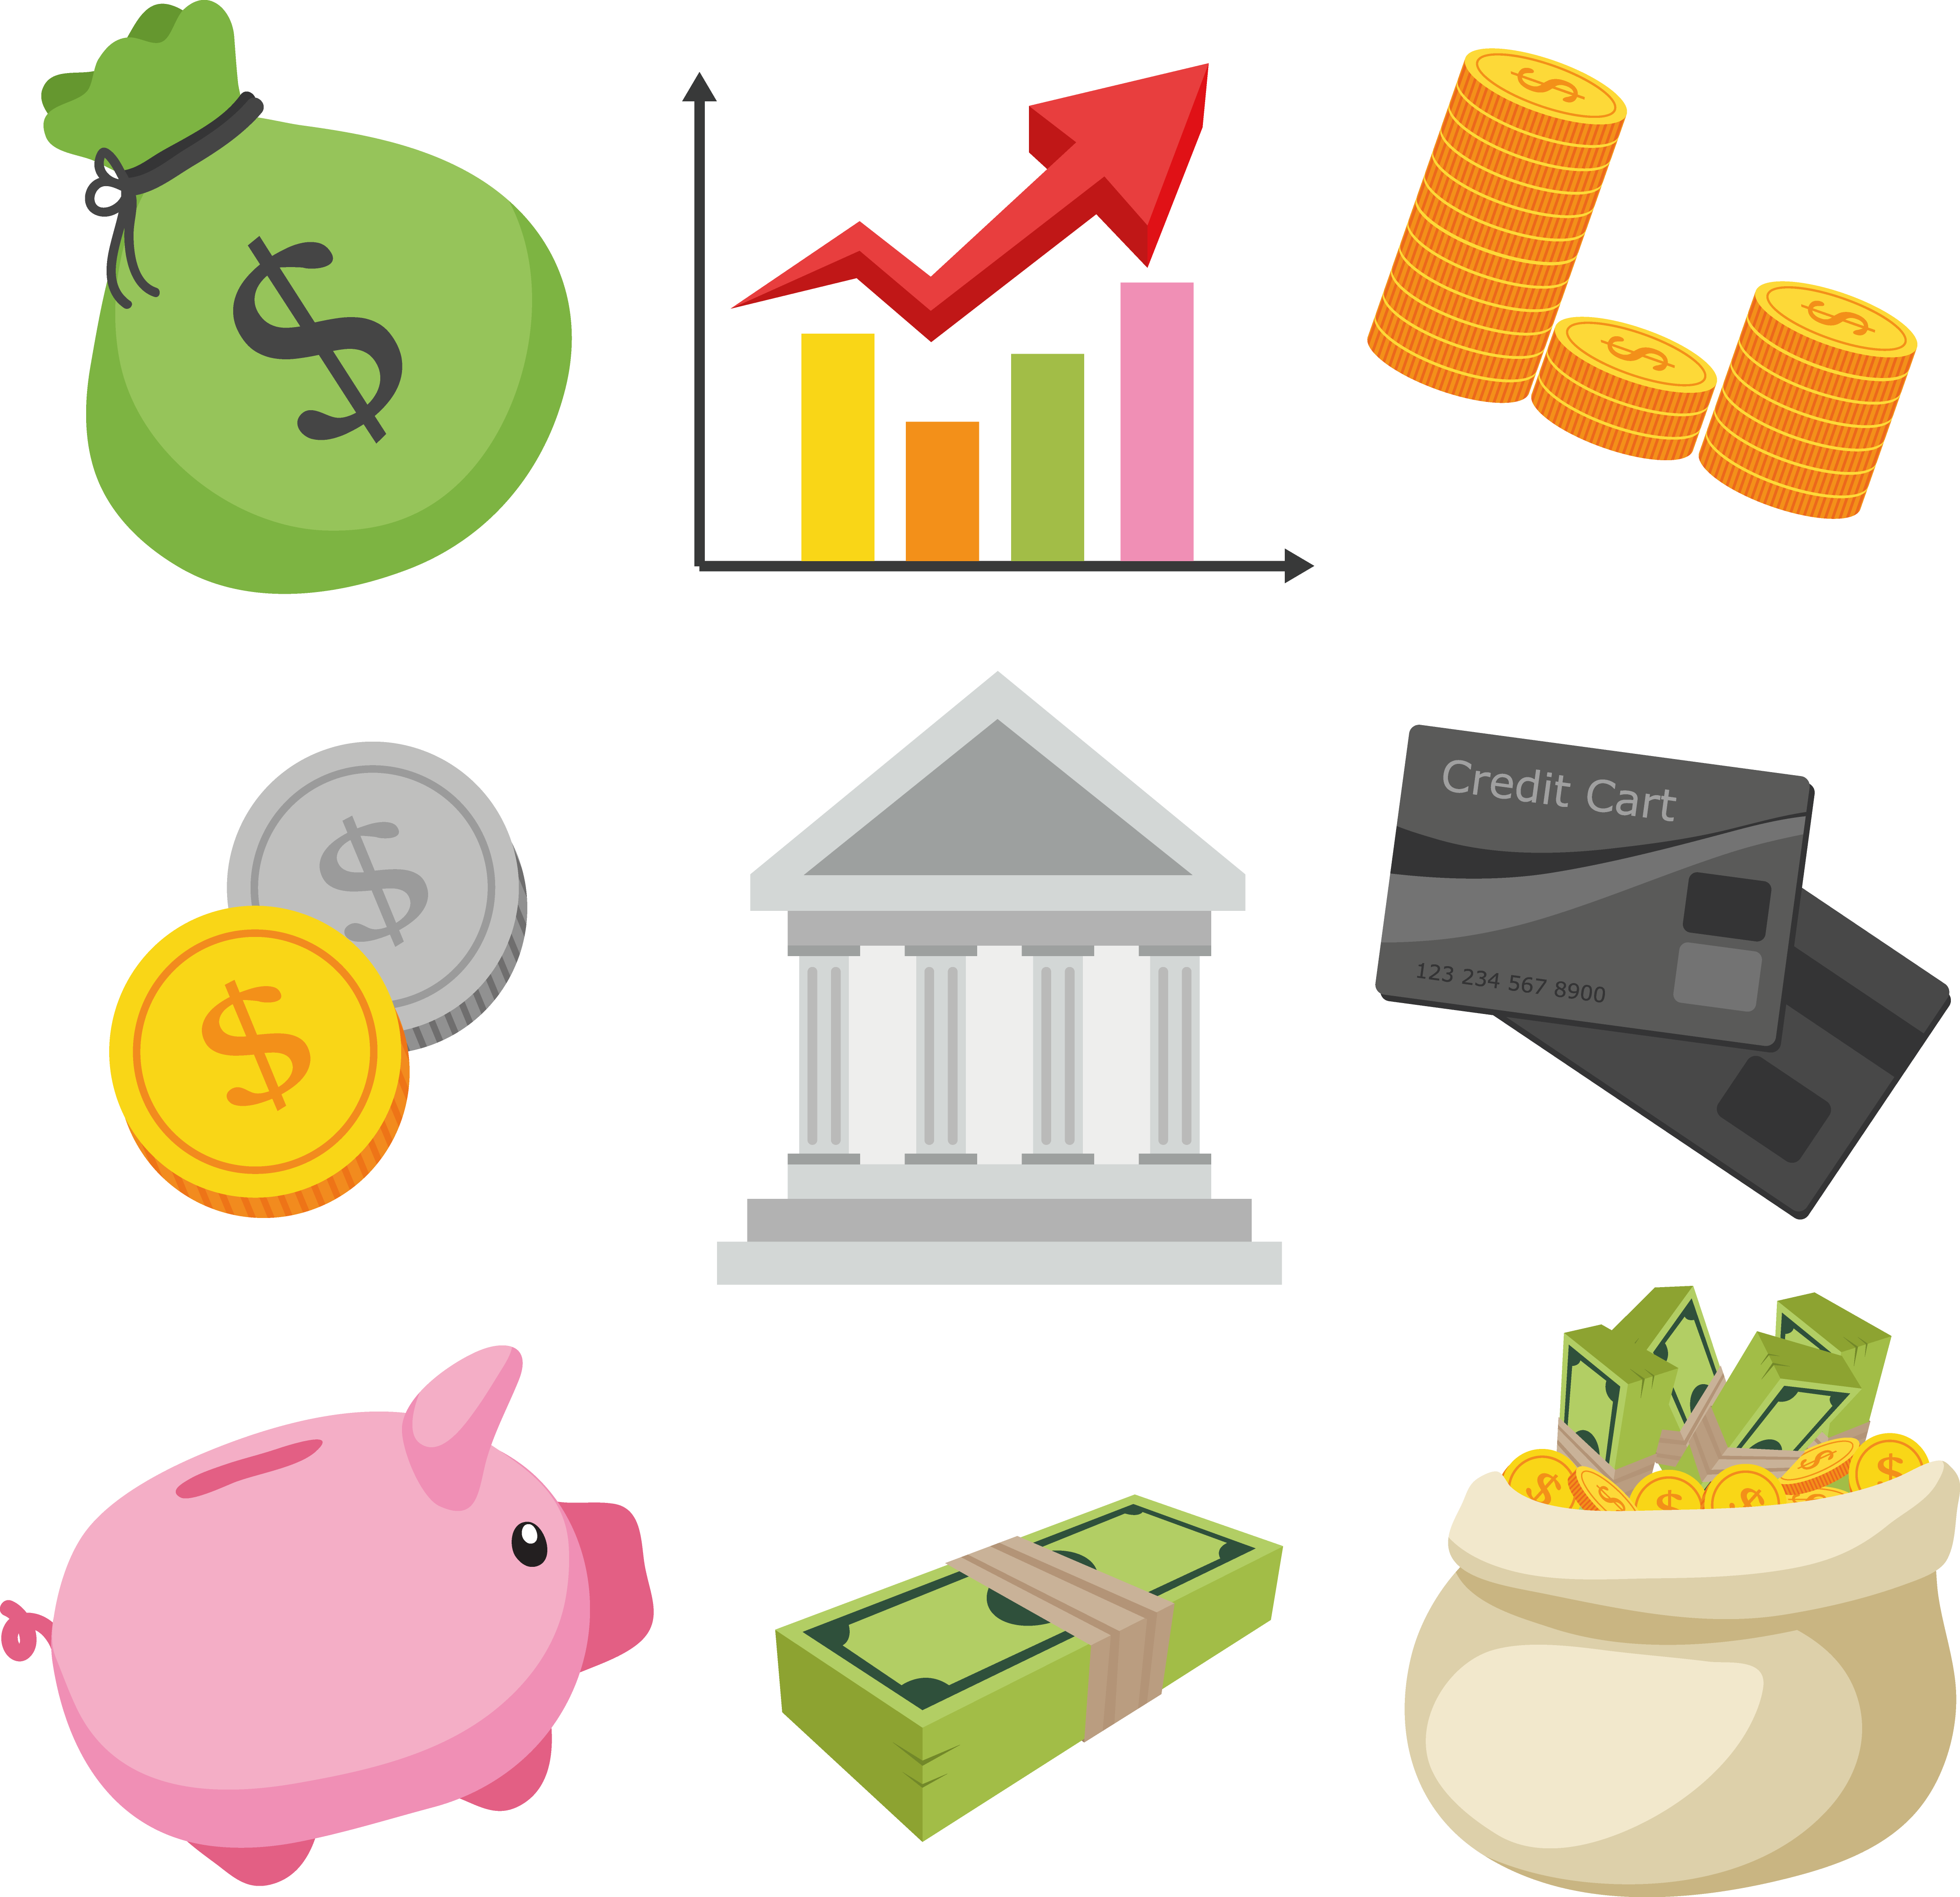 Business and translation services. Finance clipart financial security